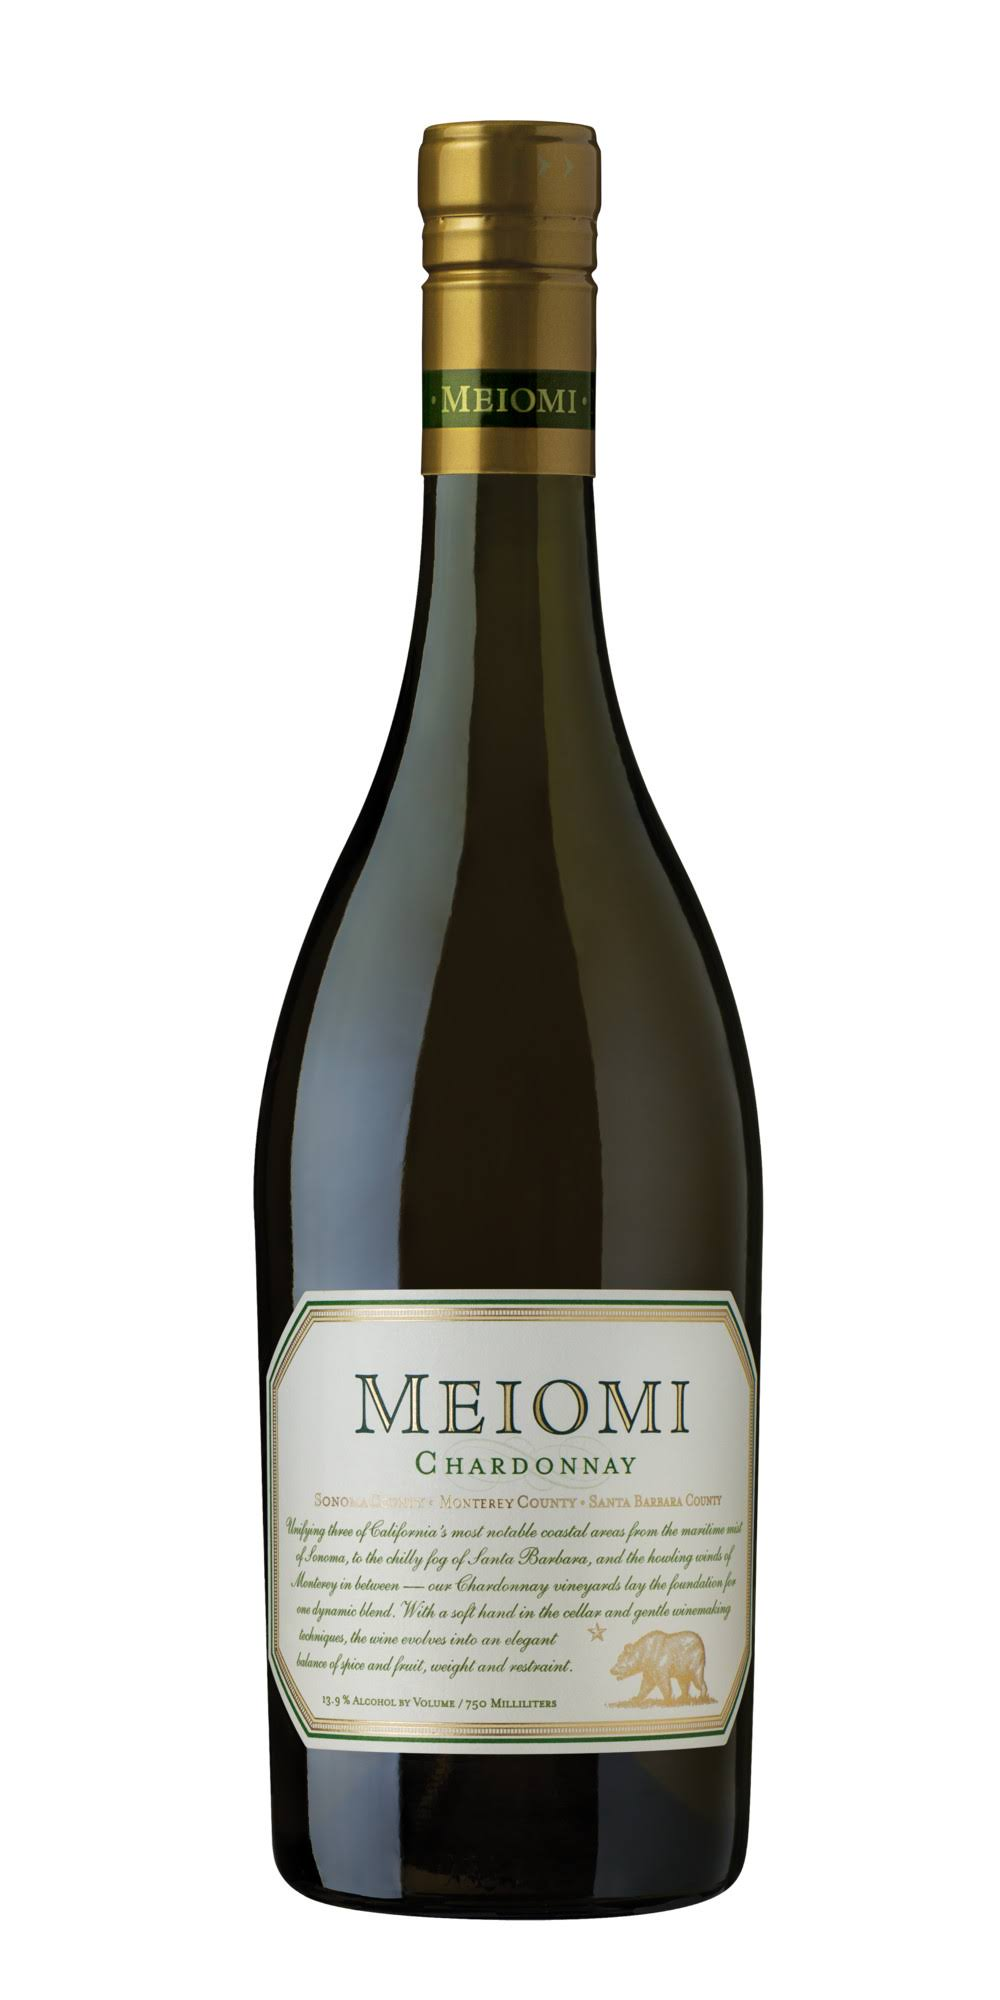 Meiomi Chardonnay, California (Vintage Varies) - 750 ml bottle